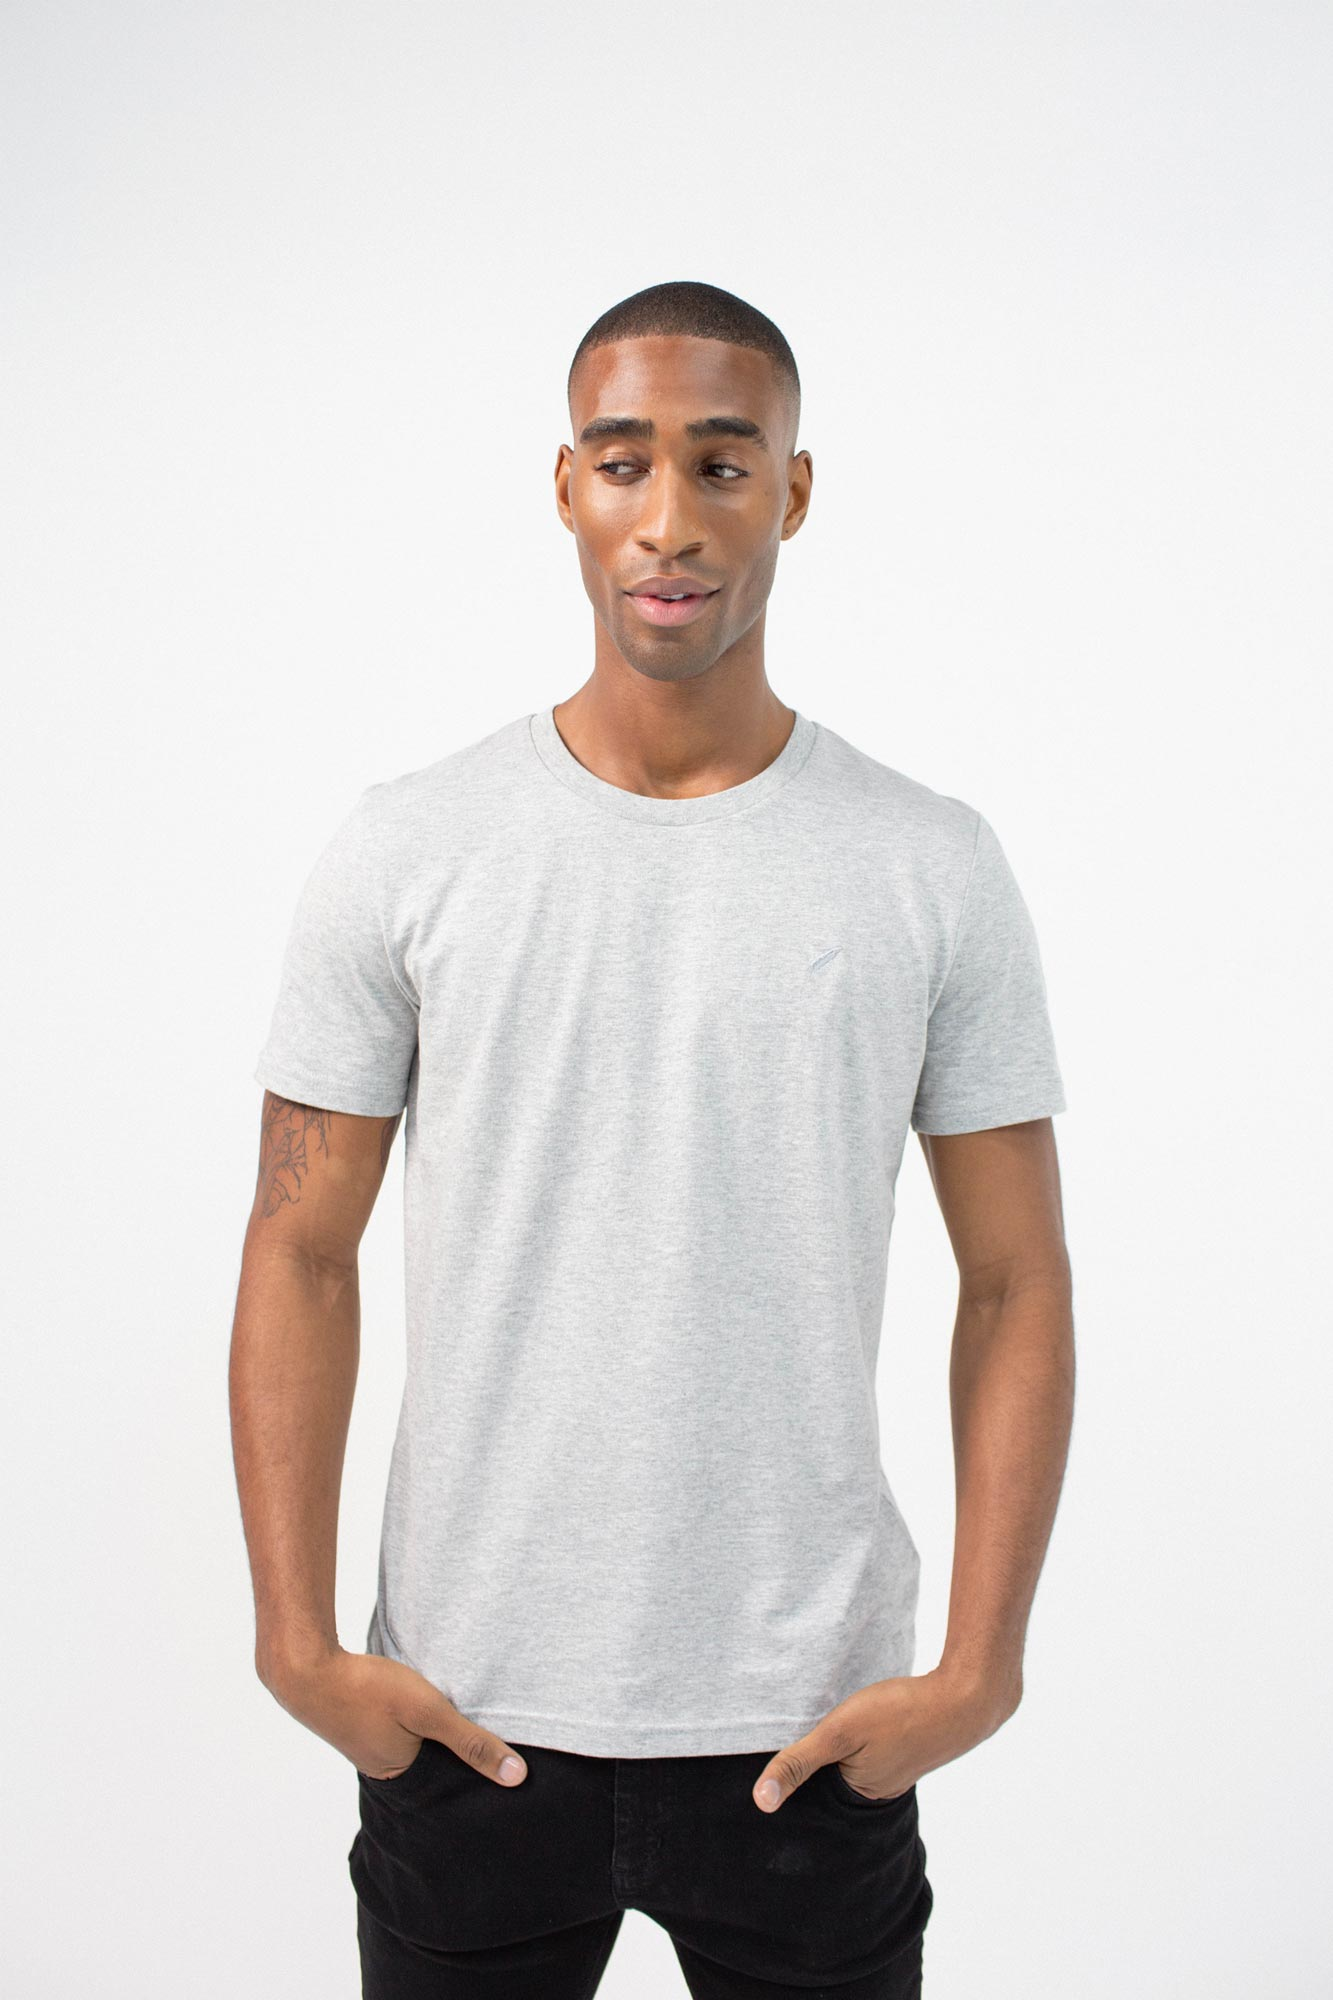 BenedictRaven Studio 0127 1 - Lounge T-Shirt Grey